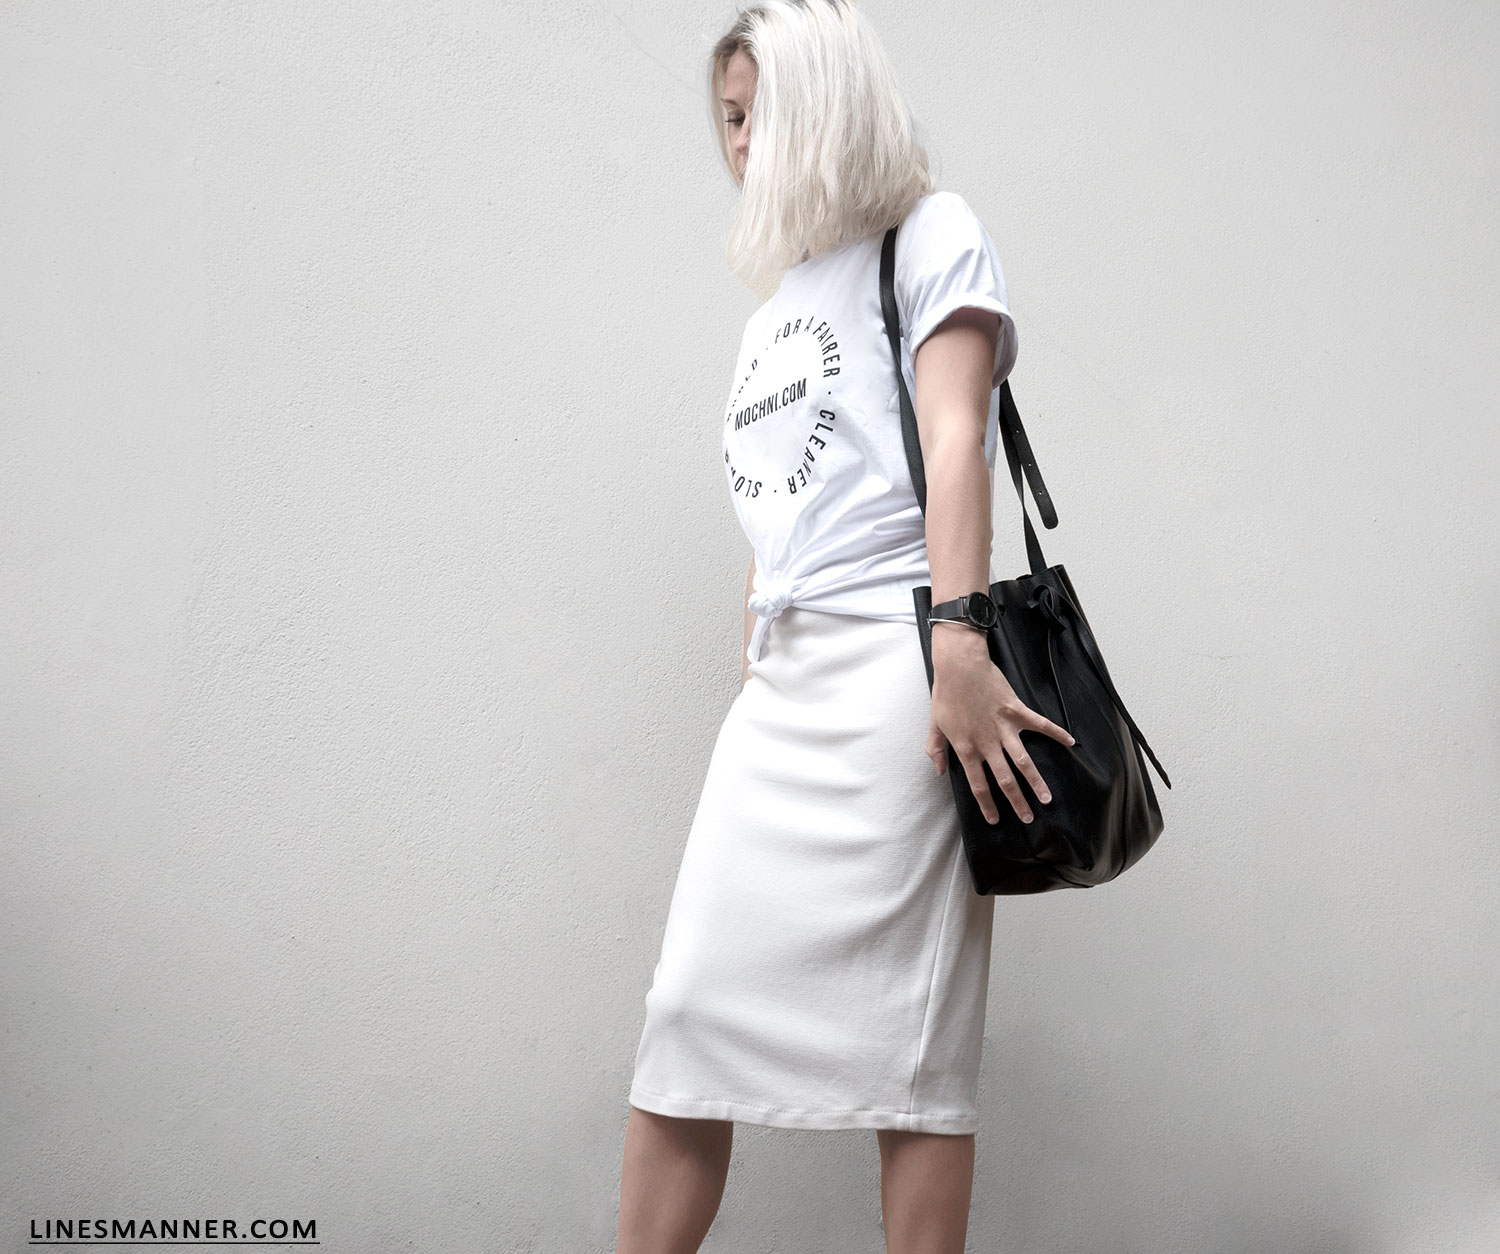 Lines-Manner-Mochni-Slow_Fashion_Plateform-Sustainable-Eco_Fashion-Awareness-Tee-Fairer-World-Conscious-Essentials-Minimal-Monochrome-Quality-Organic-7